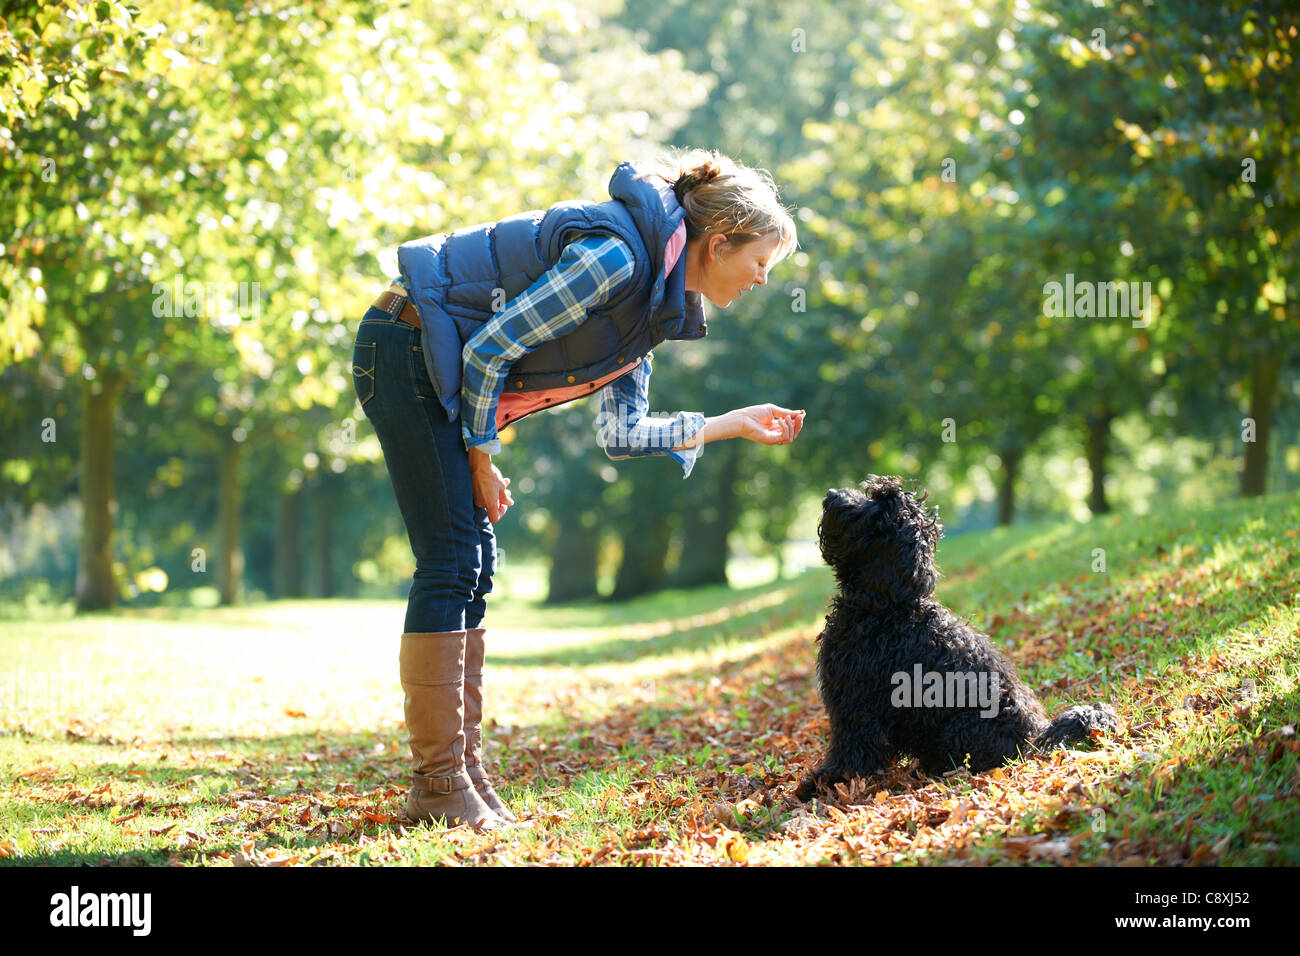 woman with black dog on a walk in the park - Stock Image